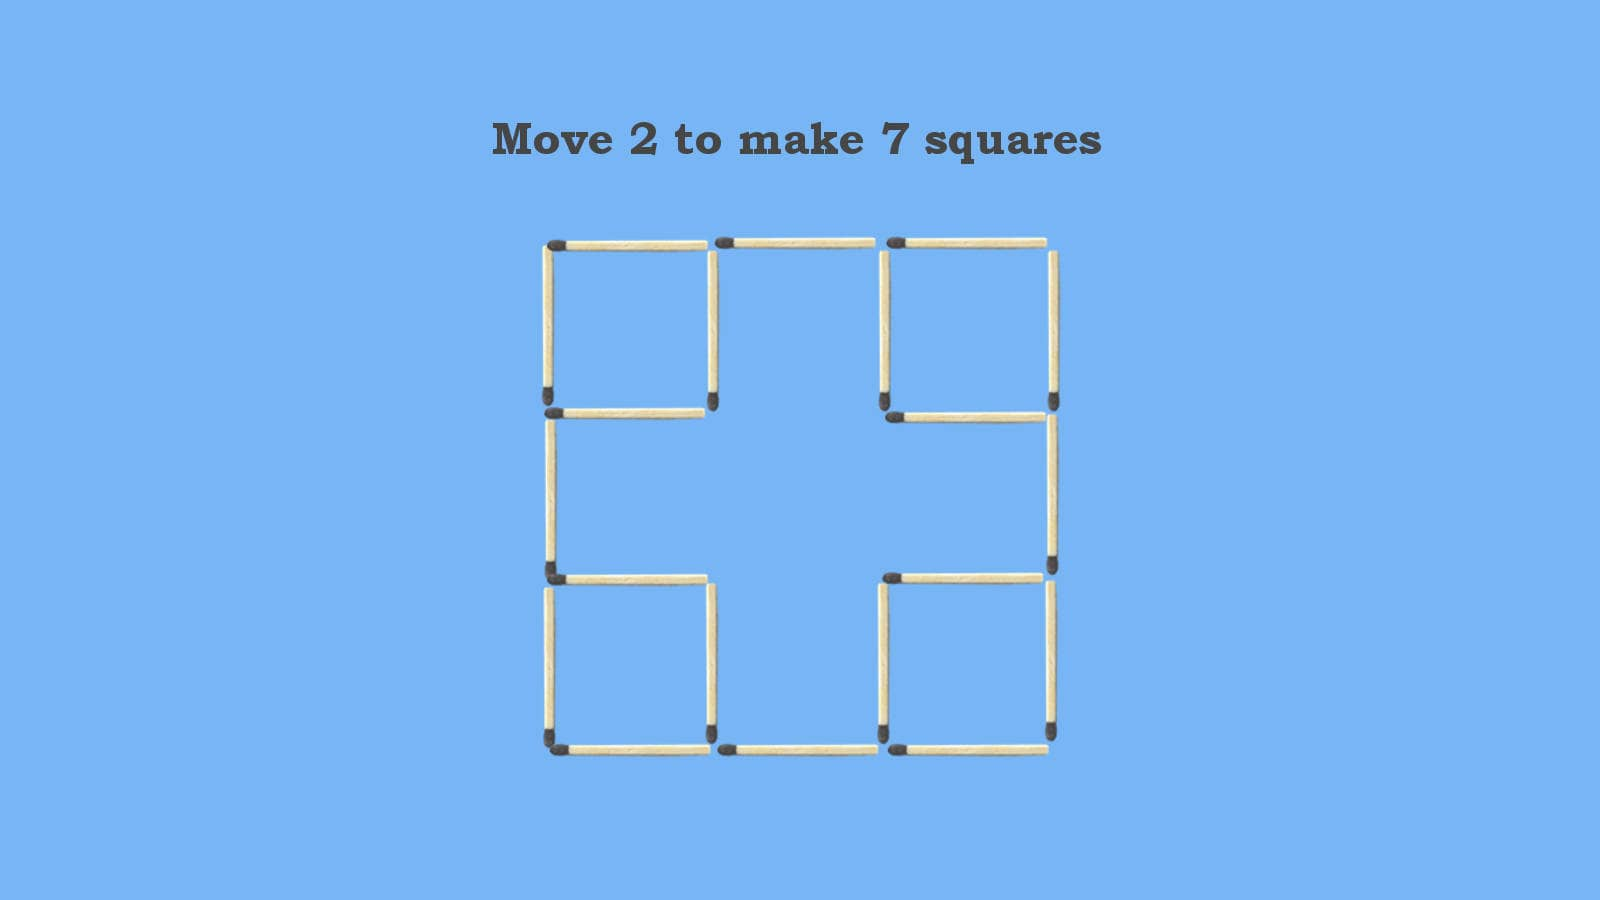 Move 2 Matches to Make 7 Squares Matchstick puzzle